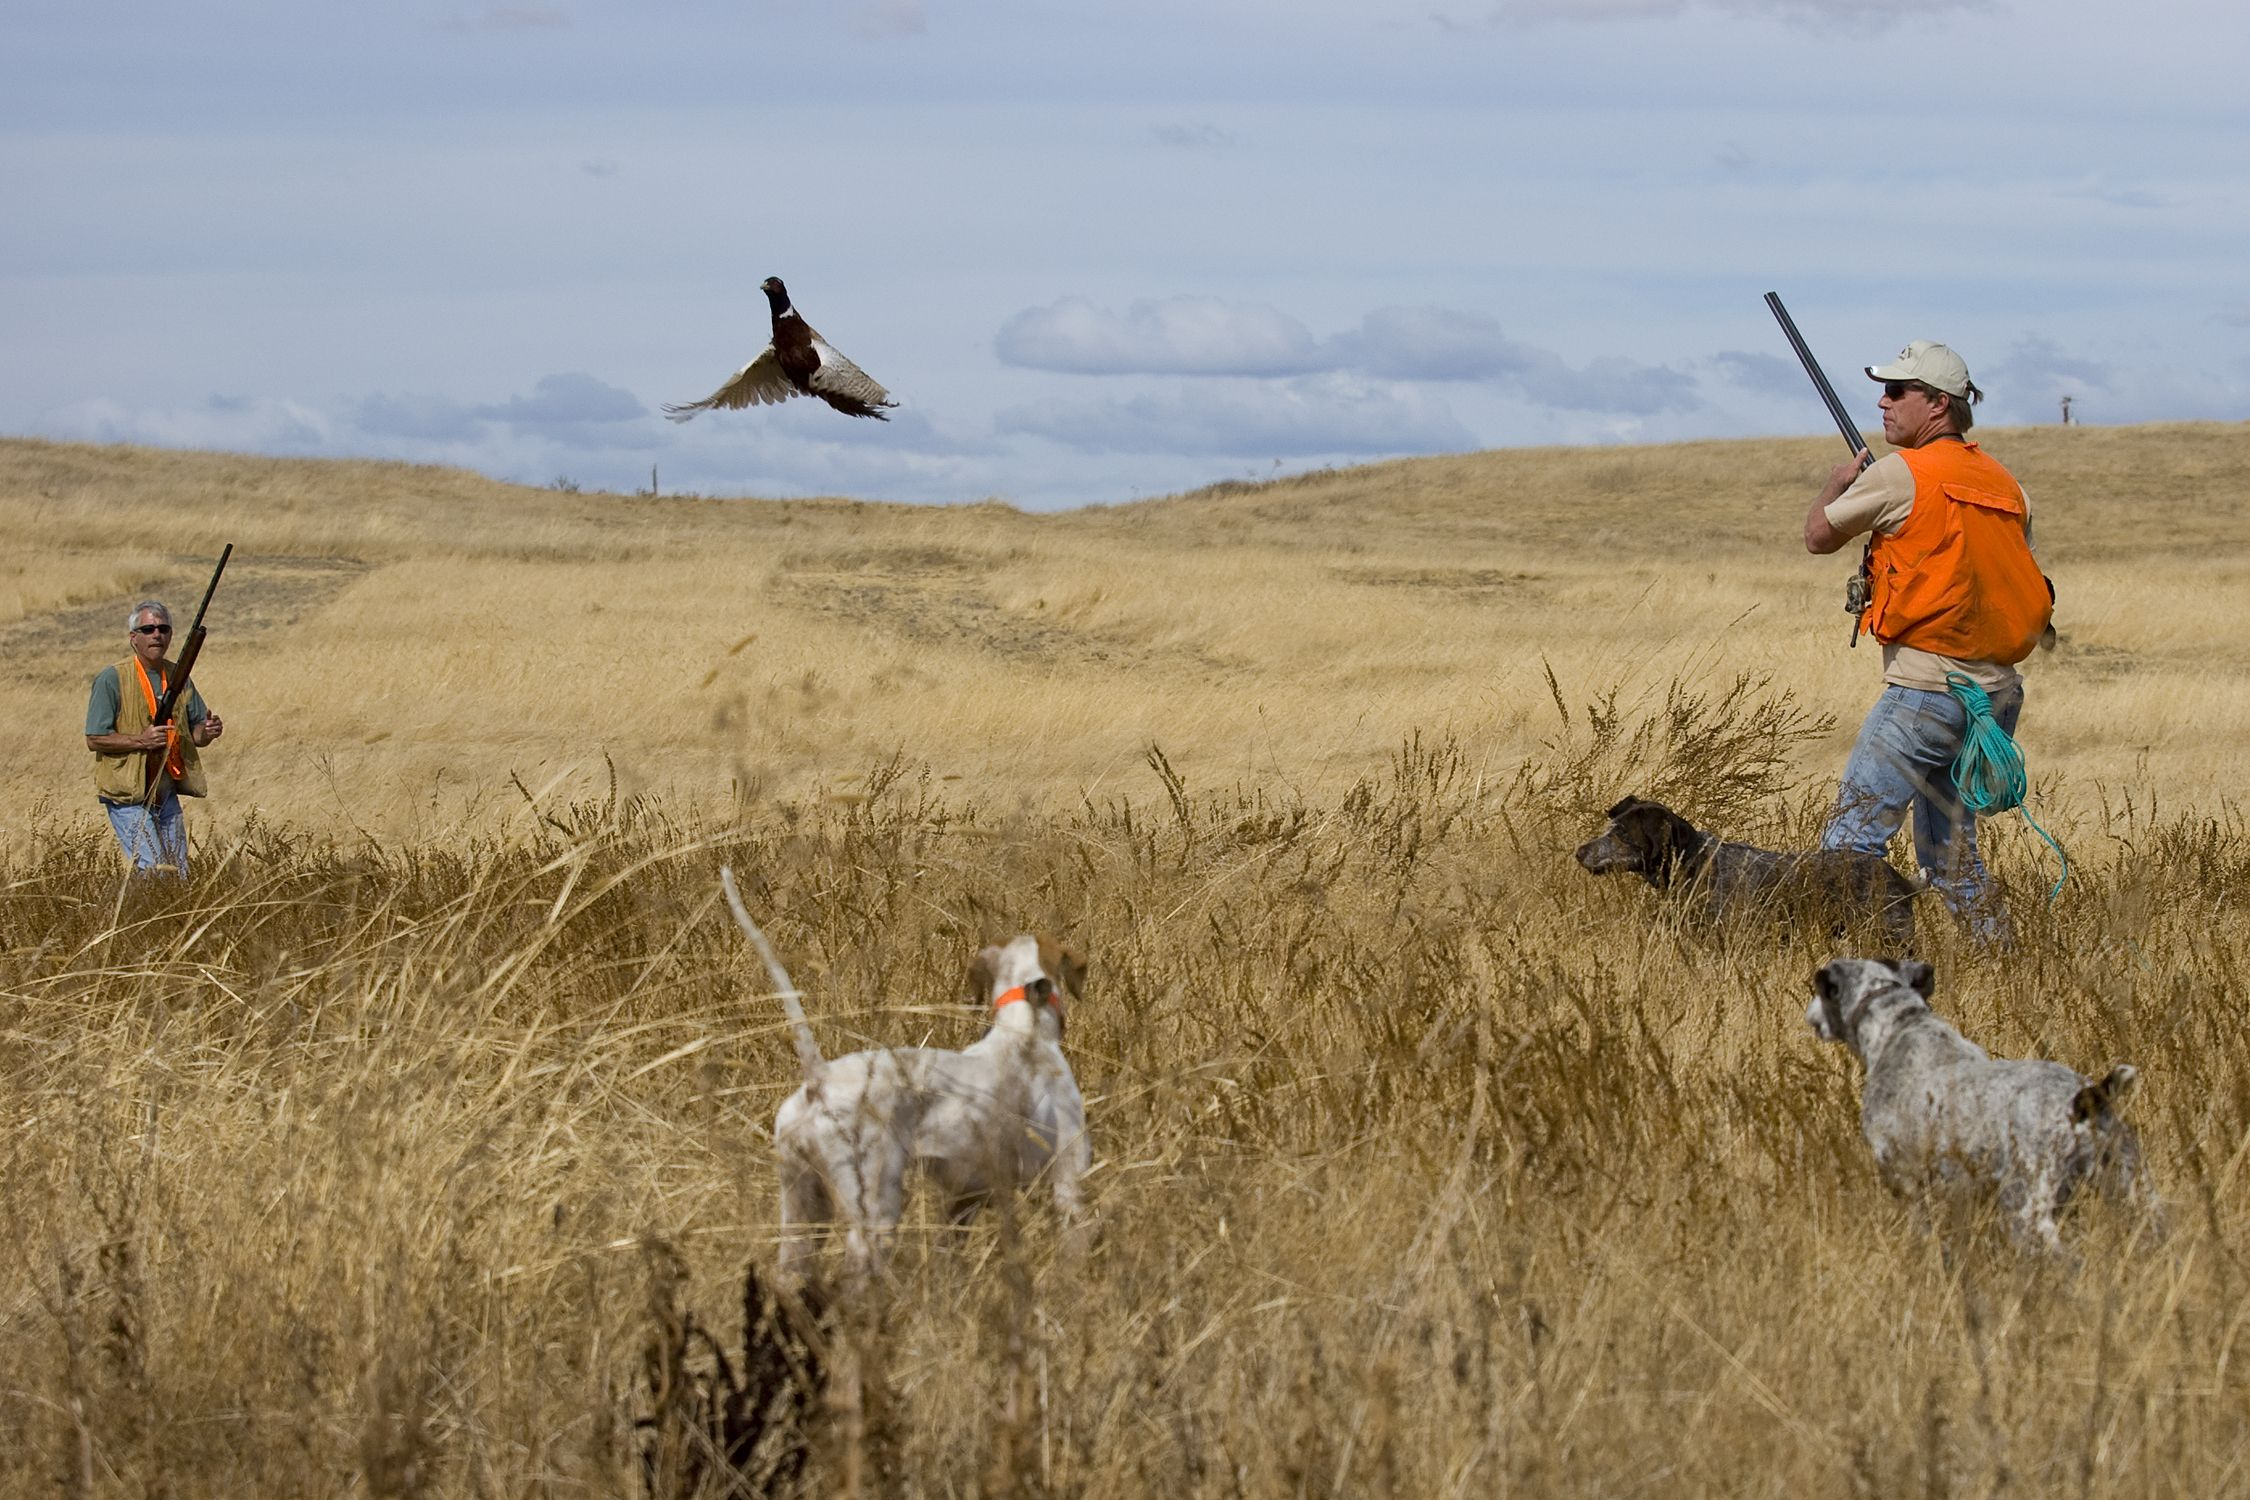 pheasant hunting pictures - HD 2250×1500